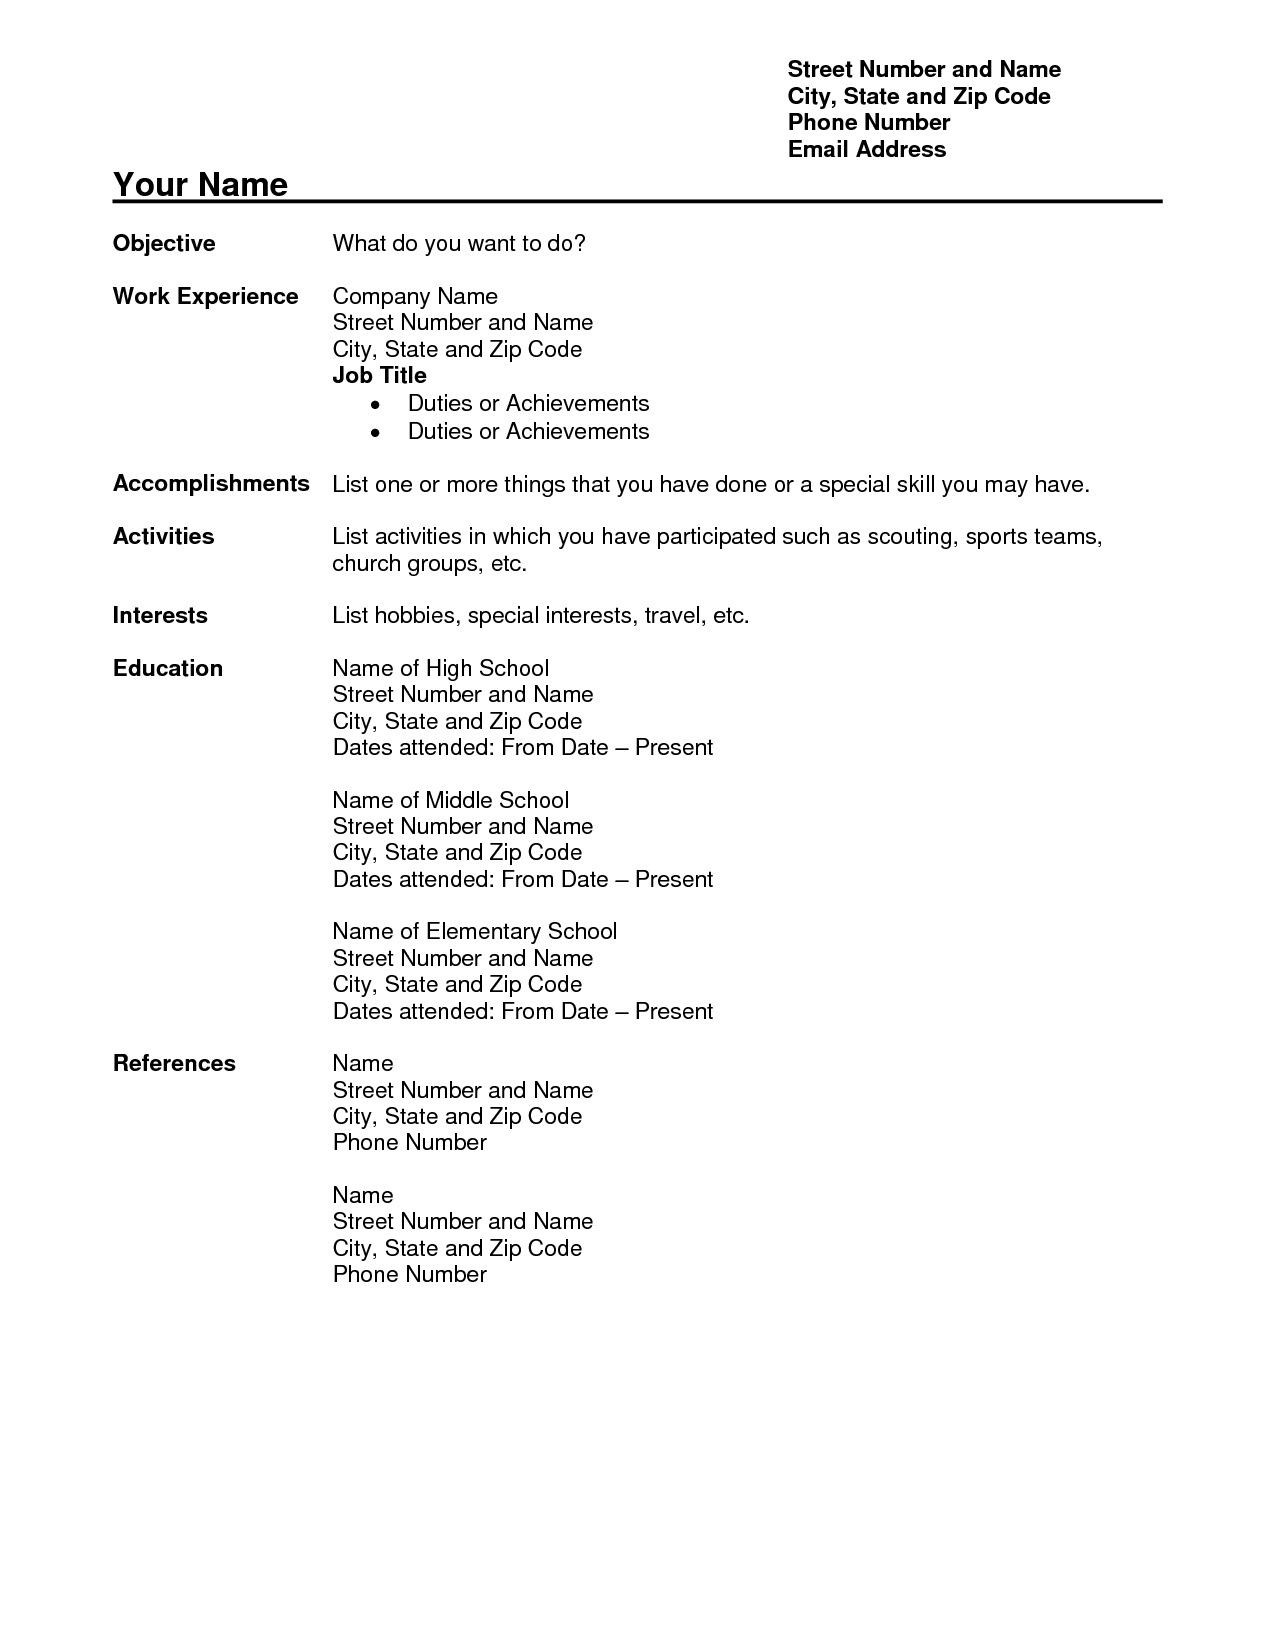 resume Resume Download resume examples download free ninja turtletechrepairs co free